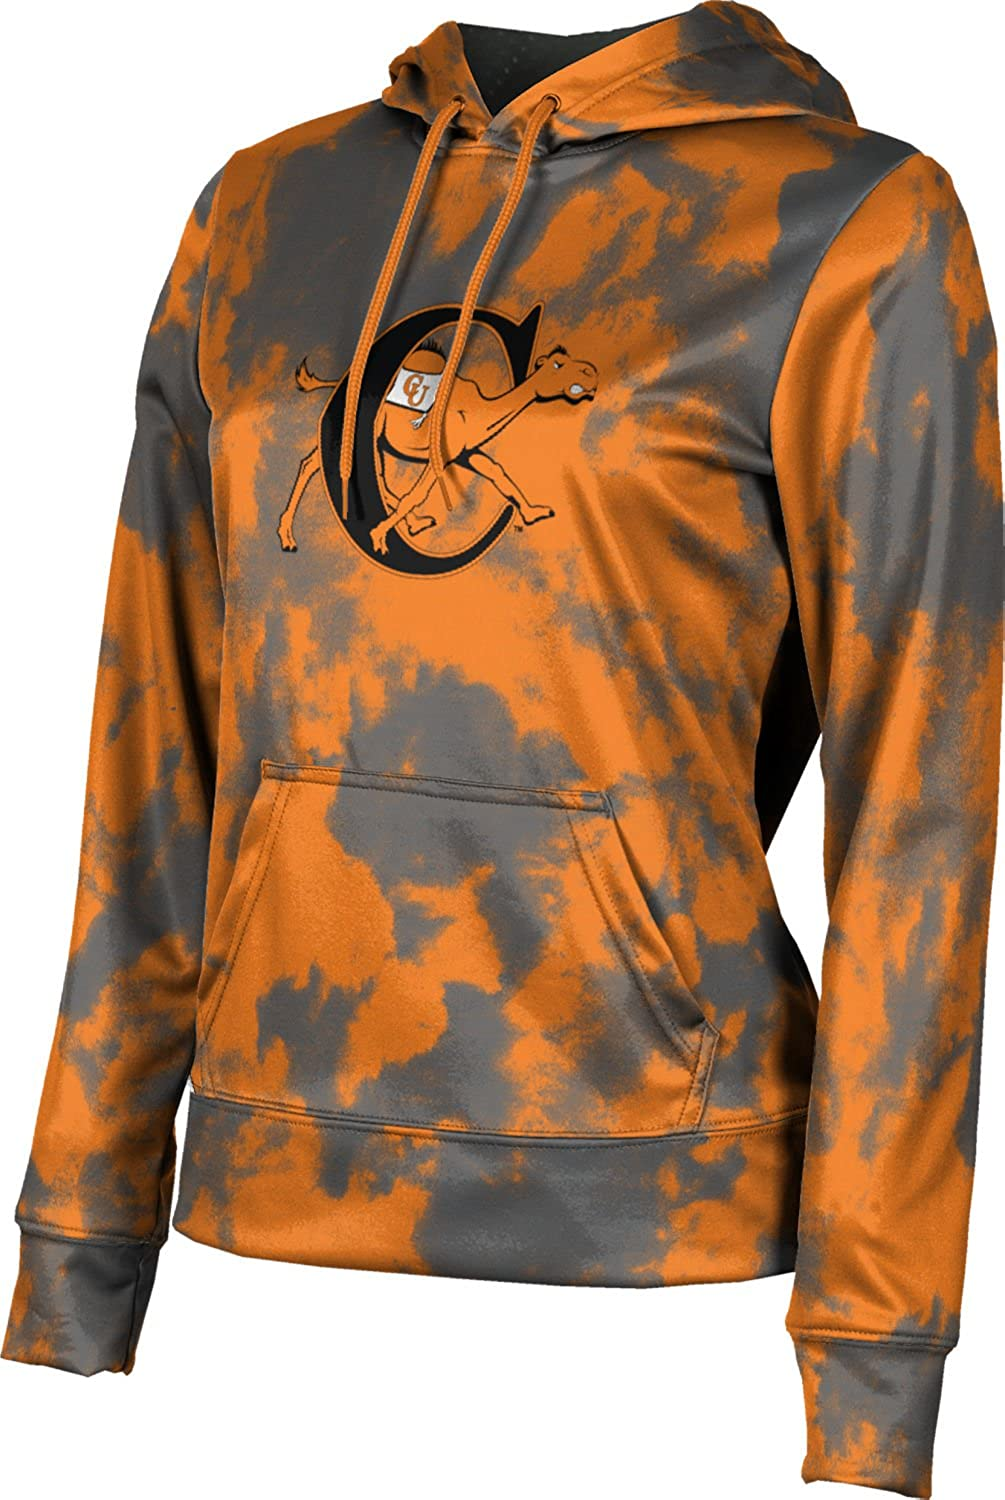 Campbell University Girls' Pullover Recommended Sweats Hoodie School Spirit Max 56% OFF